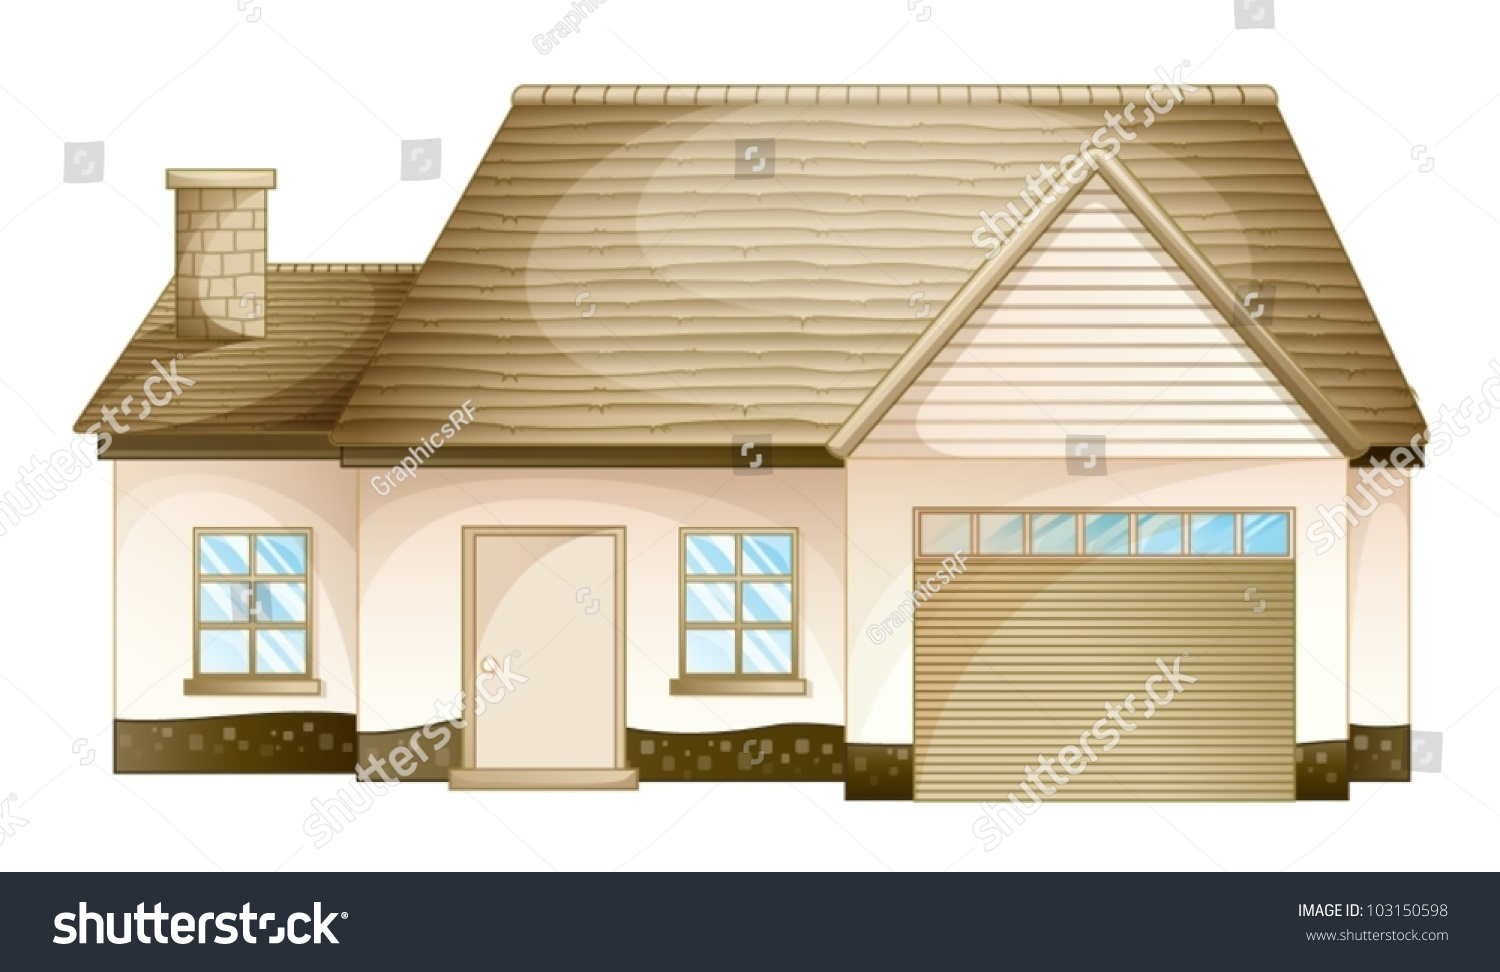 illustration simple house front view stock vector. Black Bedroom Furniture Sets. Home Design Ideas